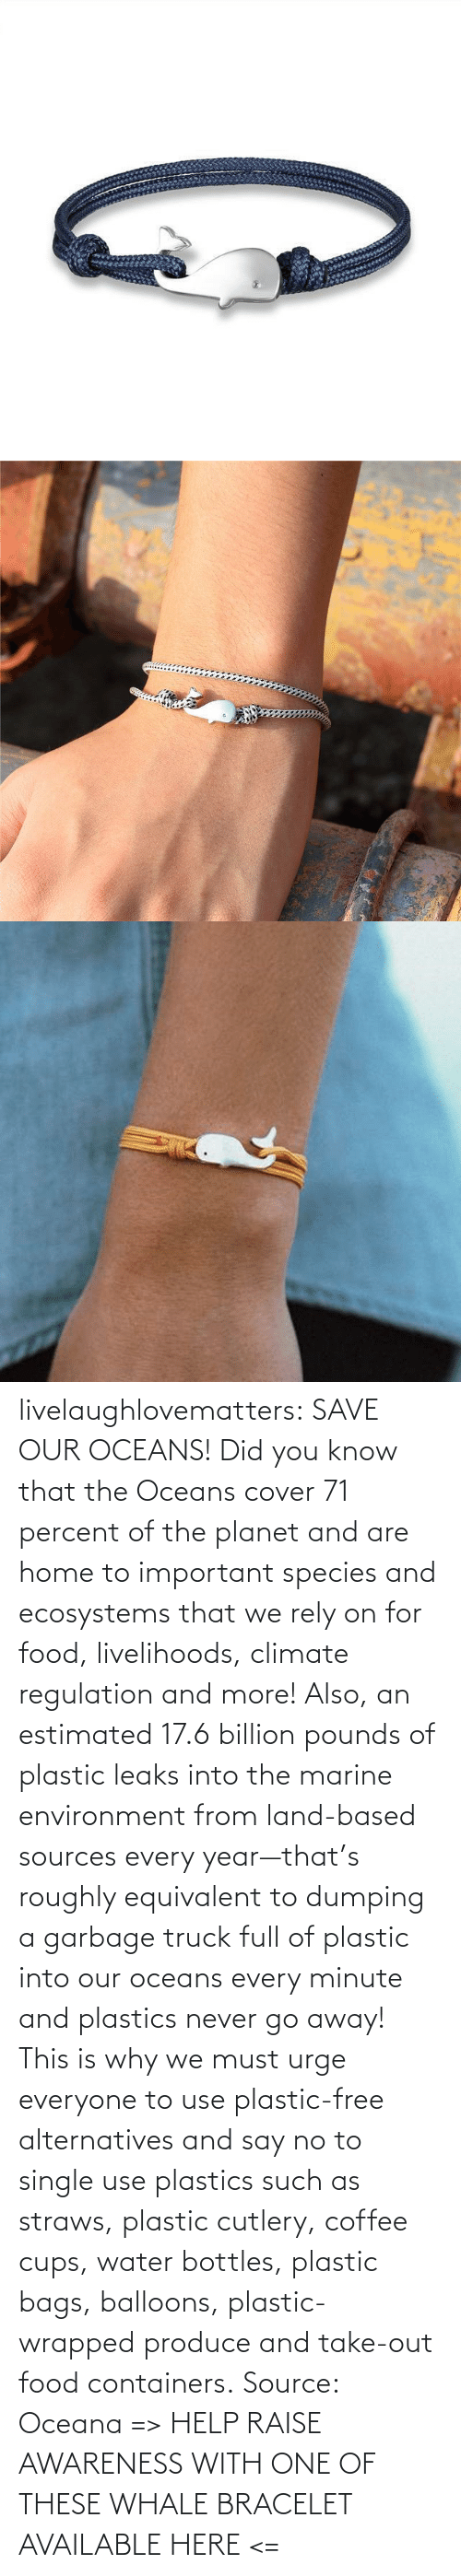 One Of These: livelaughlovematters: SAVE OUR OCEANS!  Did you know that the Oceans cover 71 percent of the planet and are home to important species and ecosystems that we rely on for food, livelihoods, climate regulation and more! Also, an estimated 17.6 billion pounds of plastic leaks into the marine environment from land-based sources every year—that's roughly equivalent to dumping a garbage truck full of plastic into our oceans every minute and plastics never go away! This is why we must urge everyone to use plastic-free alternatives and say no to single use plastics such as straws, plastic cutlery, coffee cups, water bottles, plastic bags, balloons, plastic-wrapped produce and take-out food containers. Source: Oceana => HELP RAISE AWARENESS WITH ONE OF THESE WHALE BRACELET AVAILABLE HERE <=